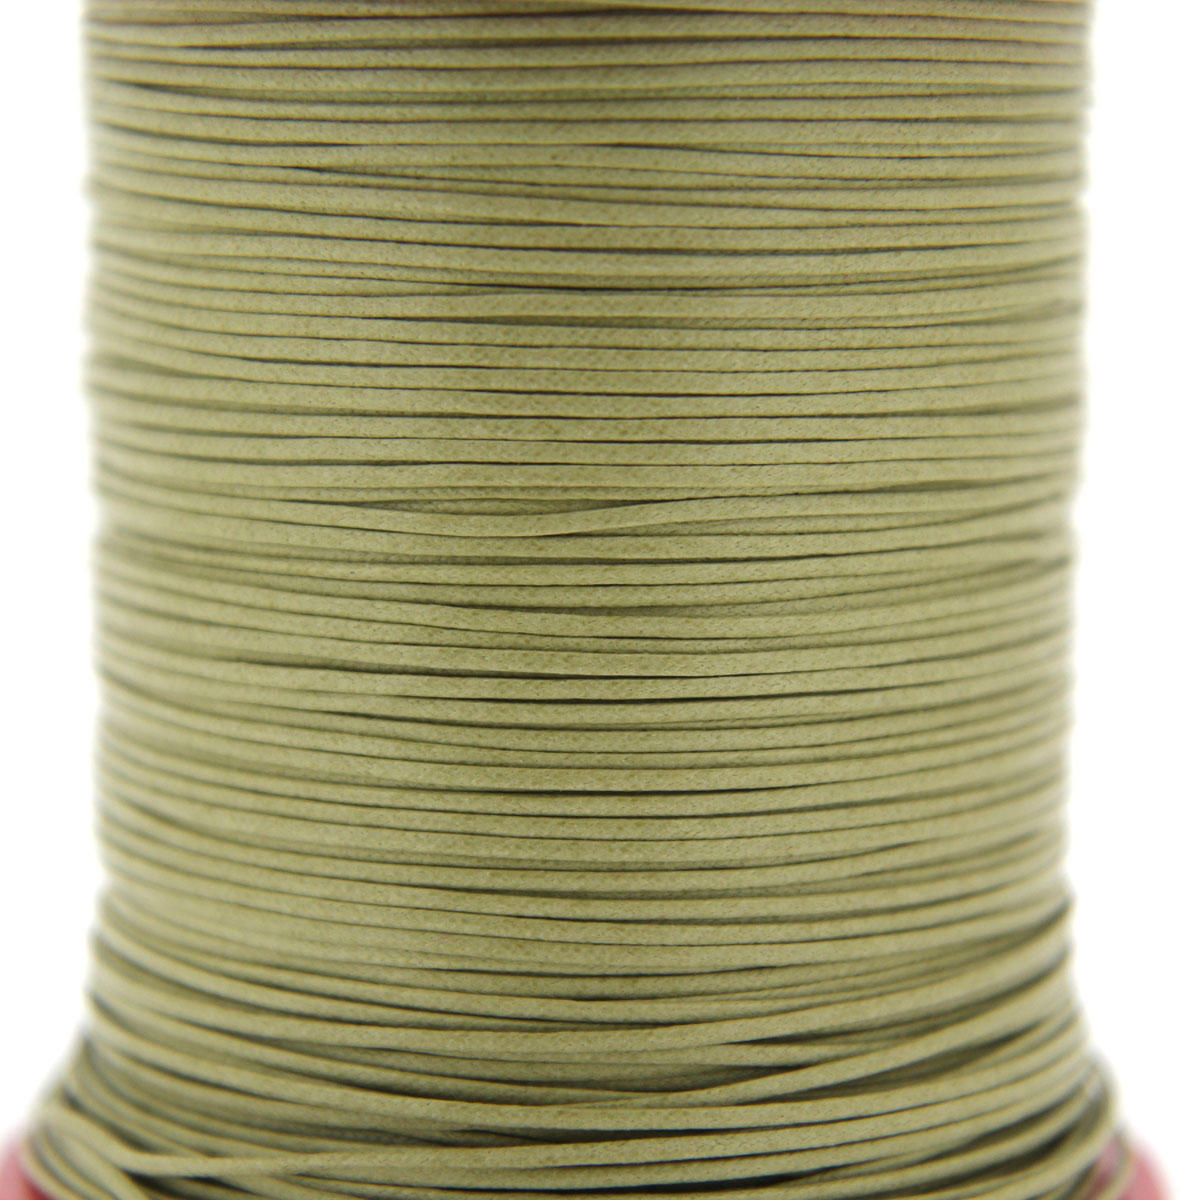 Taupe 1.5mm Cotton Bead Cord